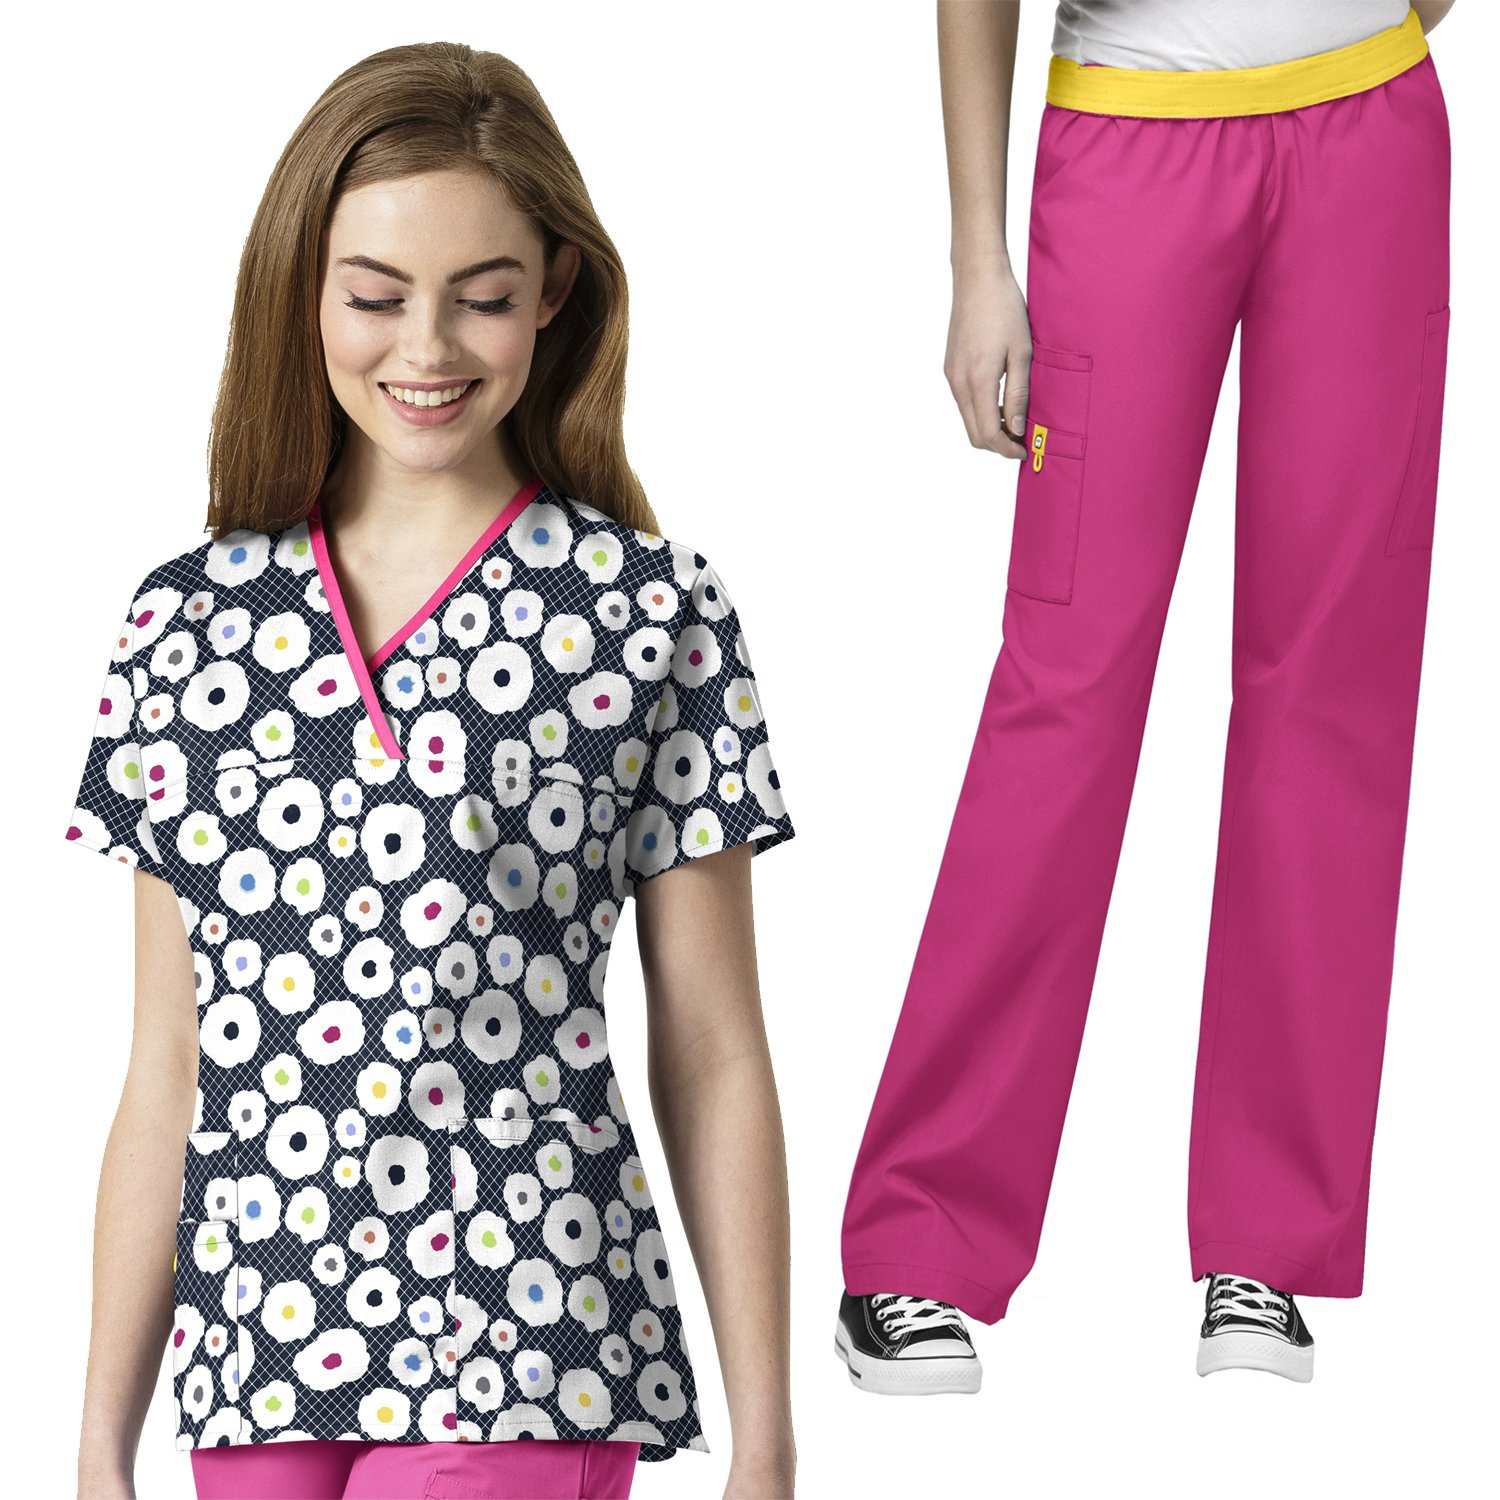 Wonderwink Women's Origins Y-neck Mock PRINT Scrub Top & The Quebec Pant Scrub set [XXS - 5XL]+ FREE GIFT